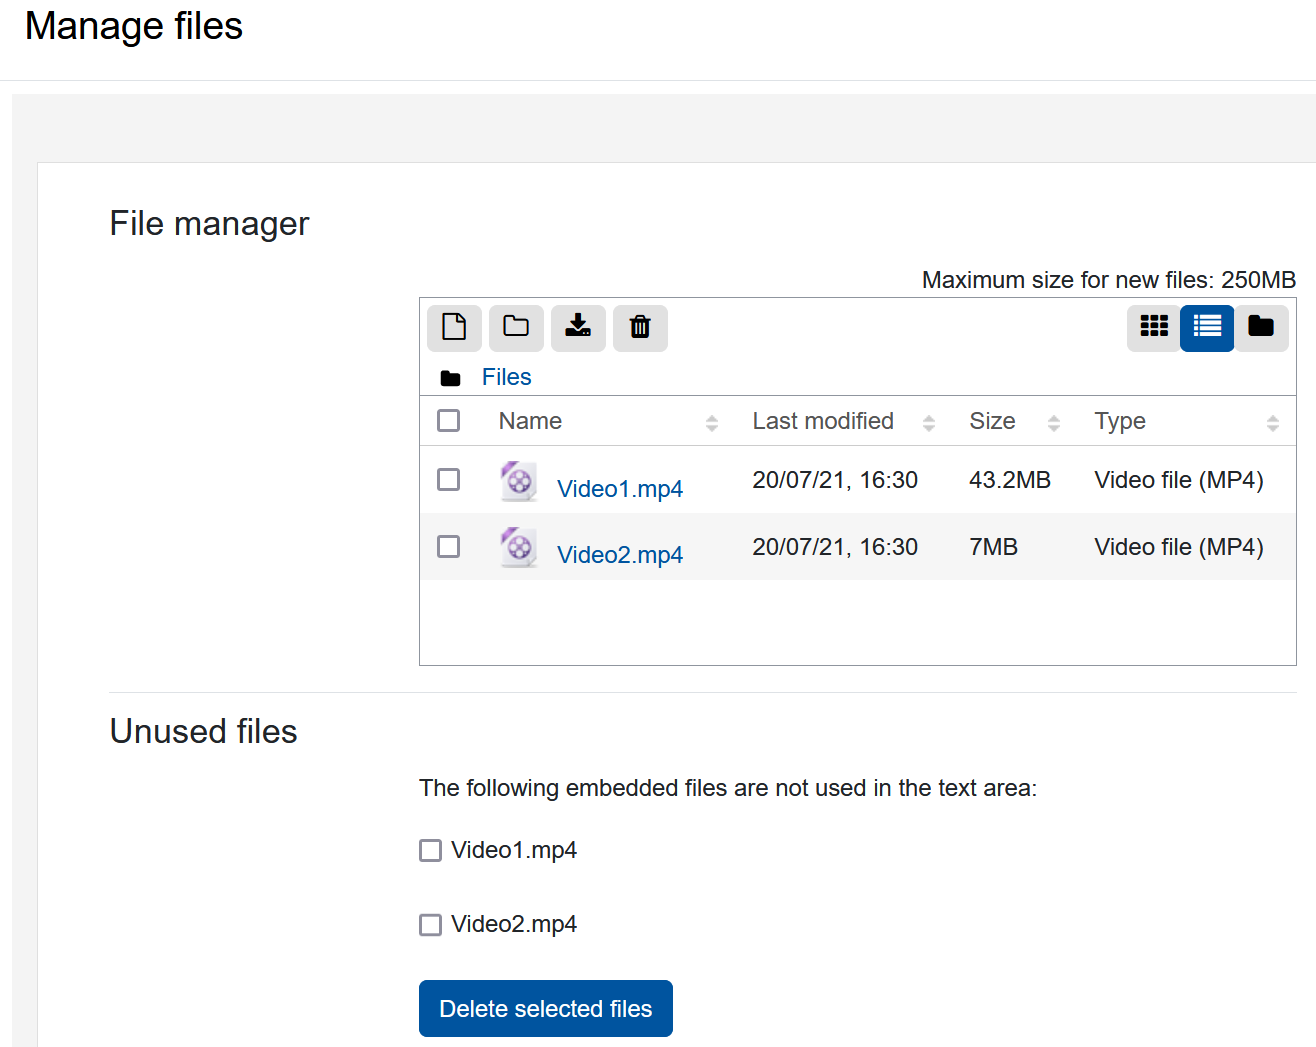 """Screenshot """"Manage files"""" with display of files uploaded to the repository"""